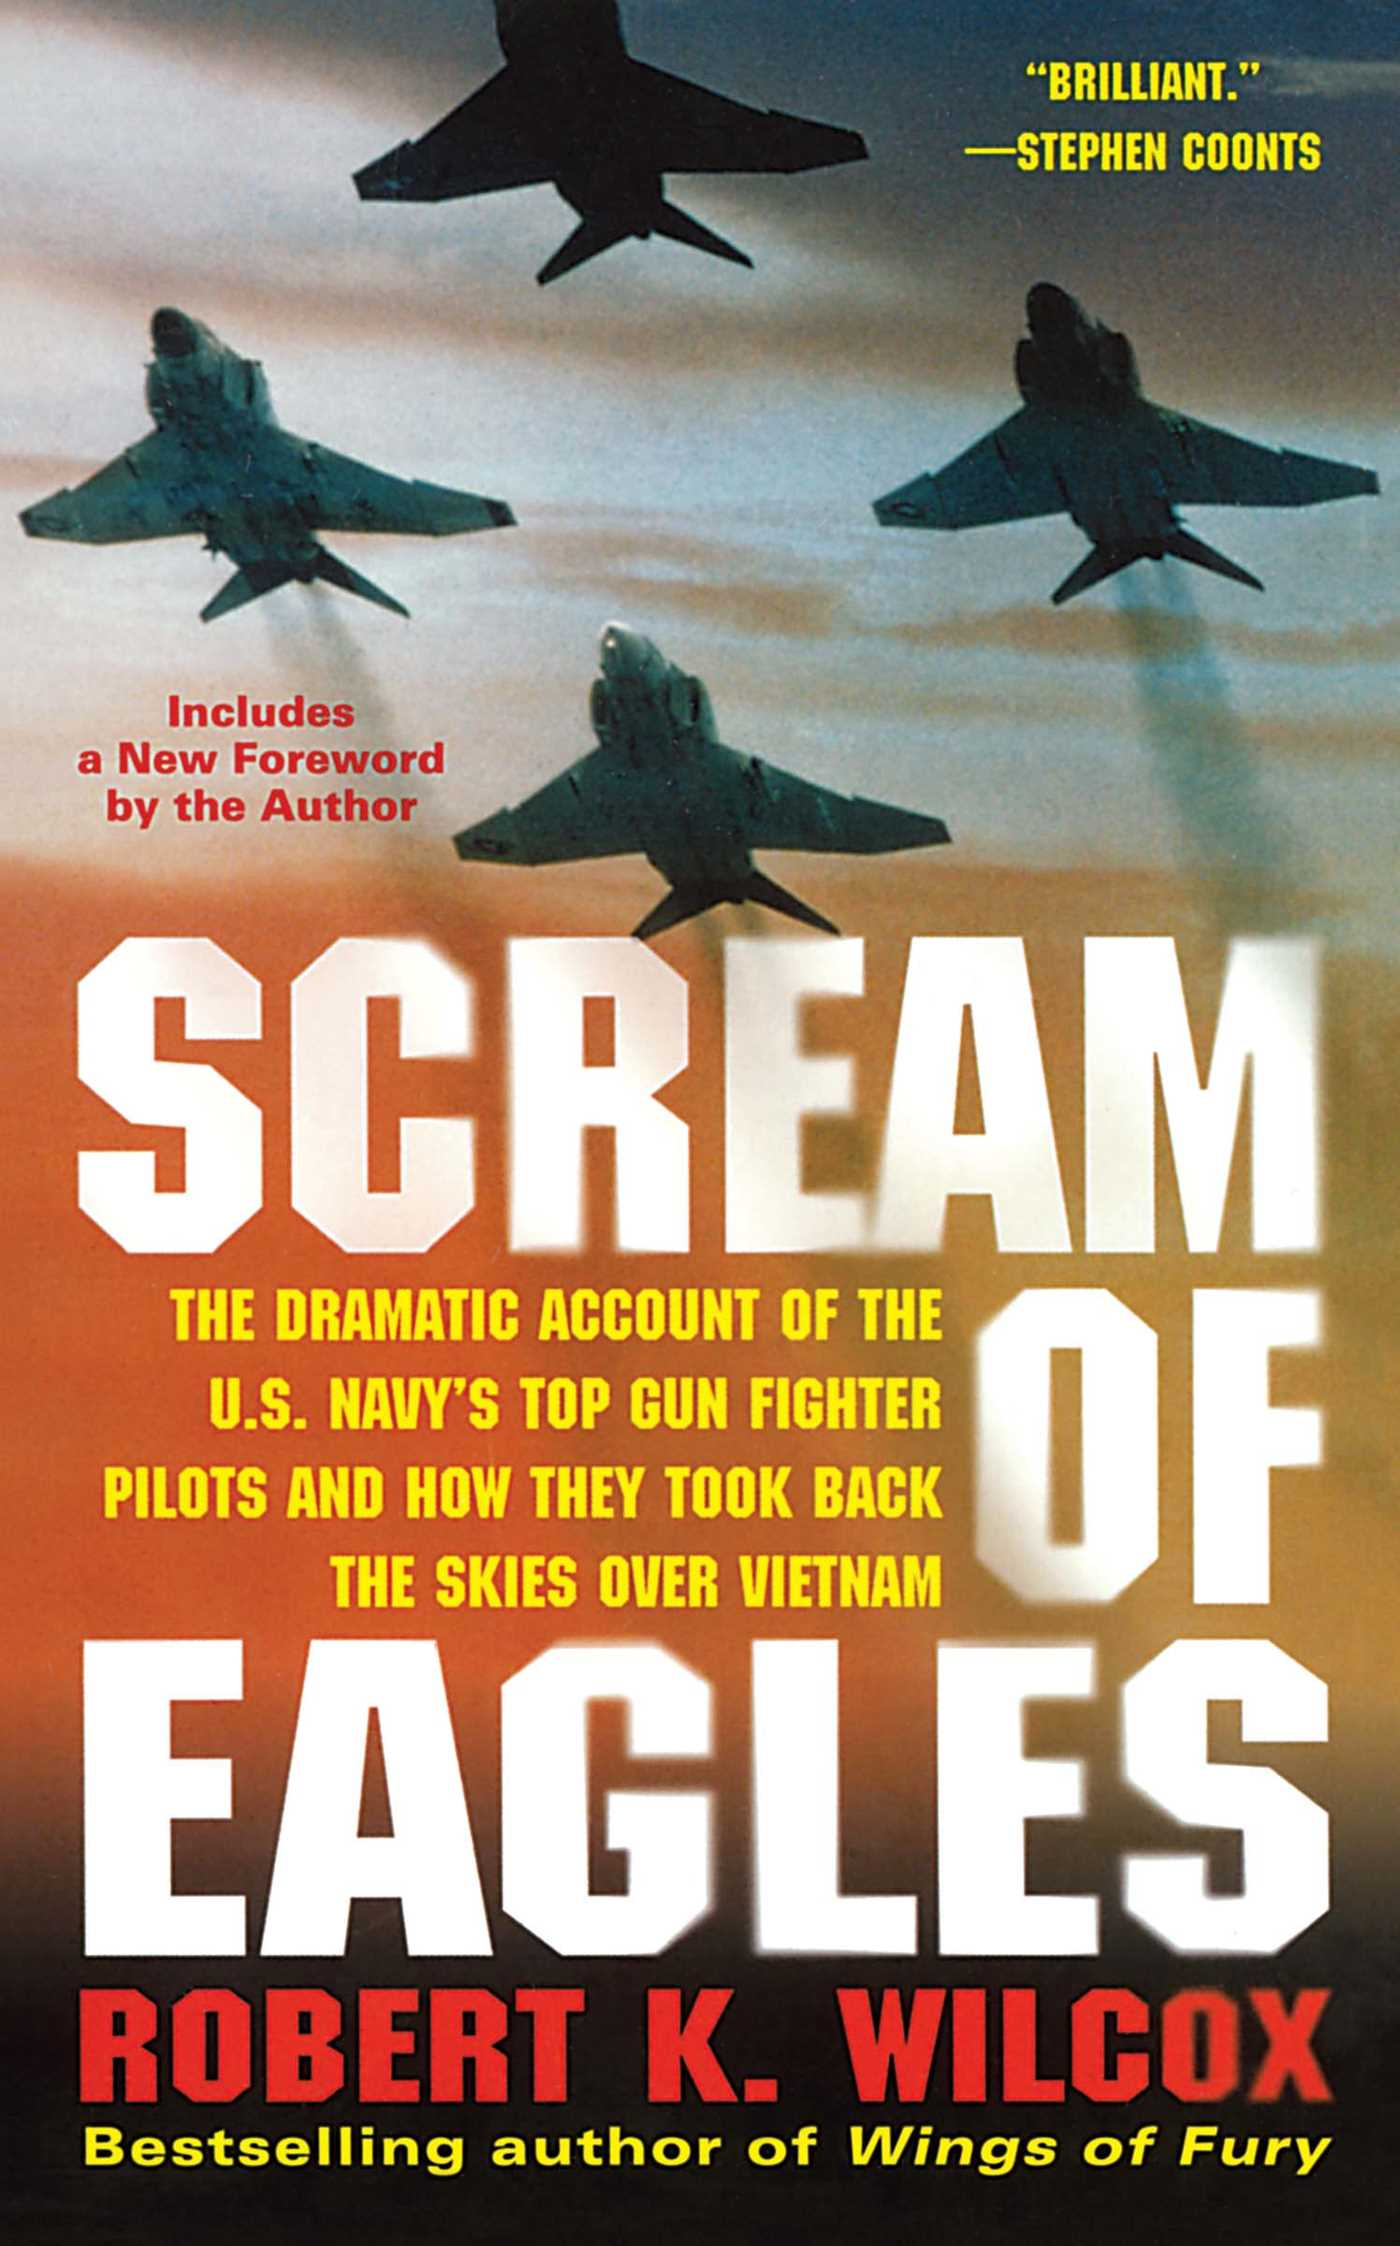 Scream of eagles 9781476788418 hr